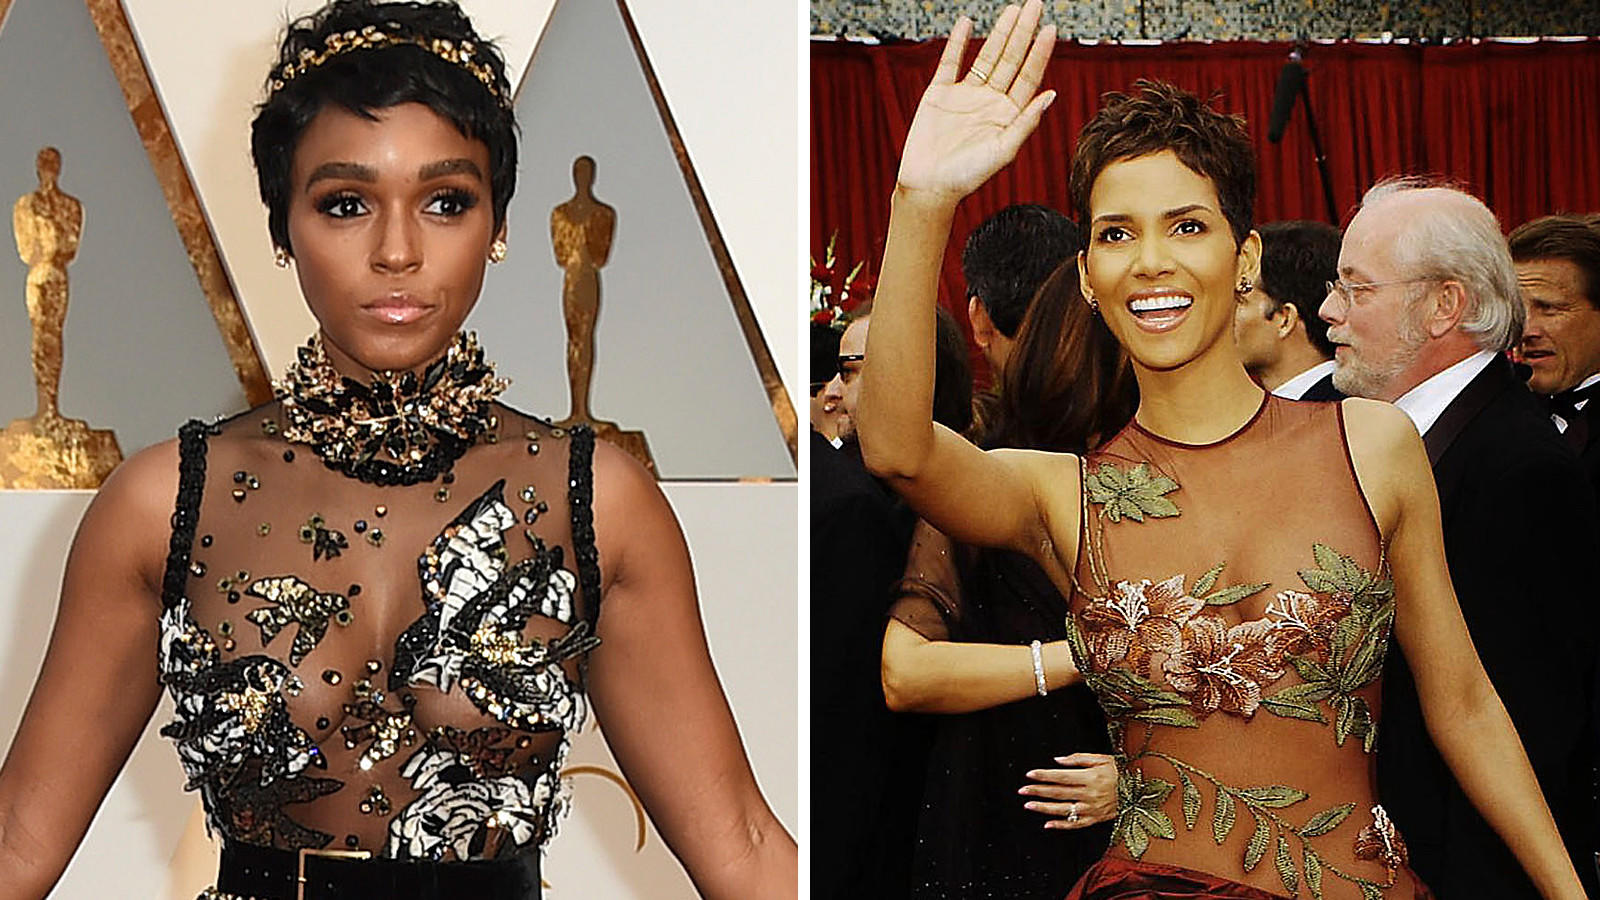 Janelle Monáe Left And Halle Berry In Elie Saab Los Angeles Times